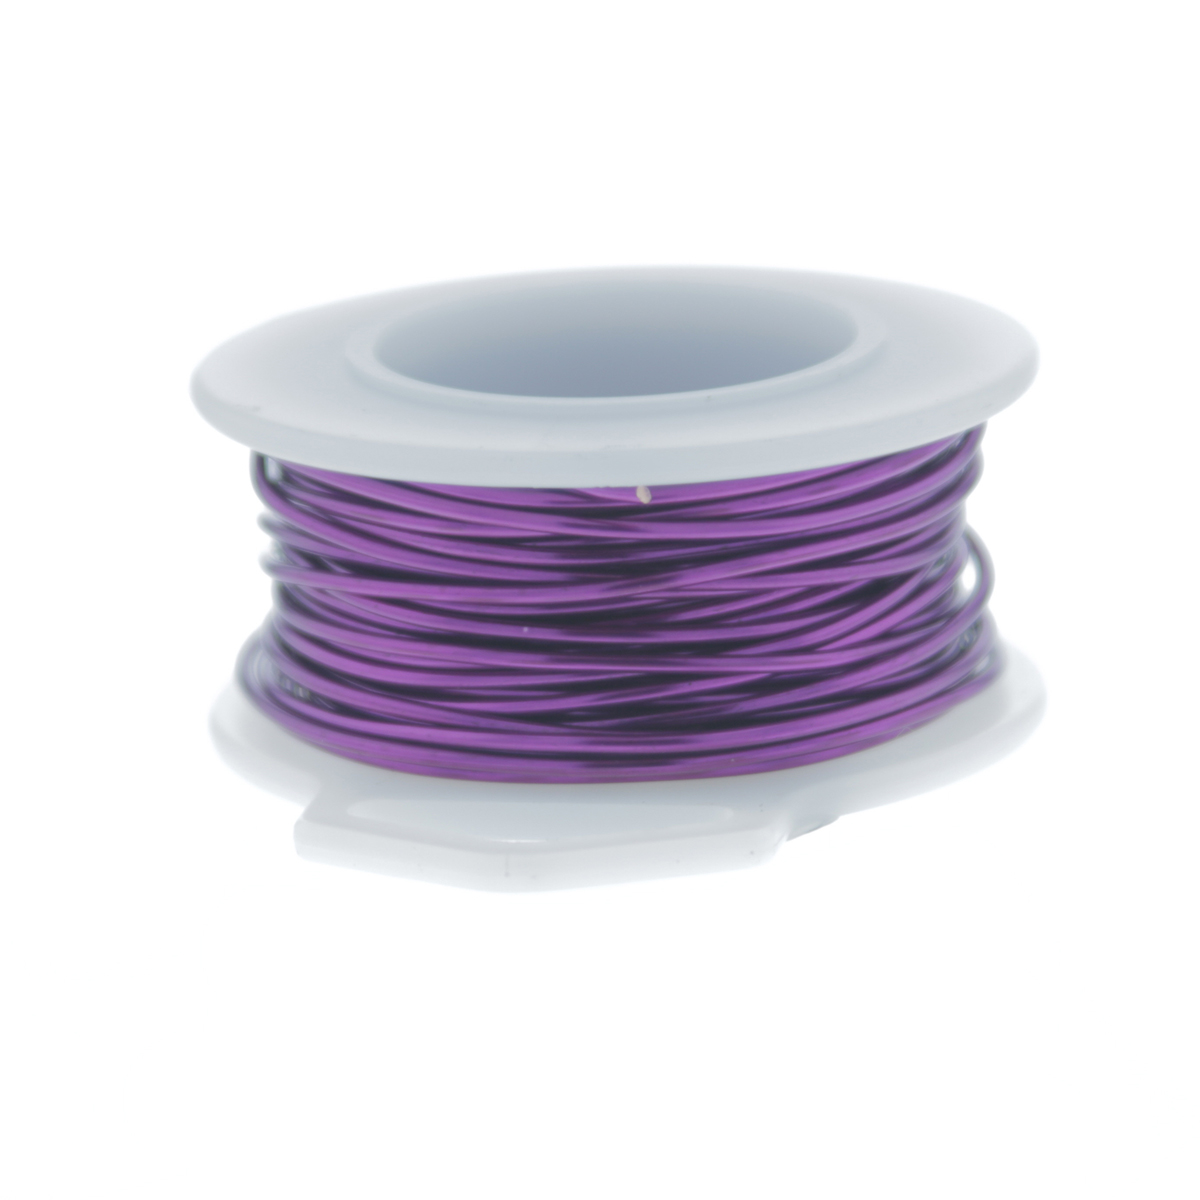 34 Gauge Round Silver Plated Amethyst Copper Craft Wire - 150 ft